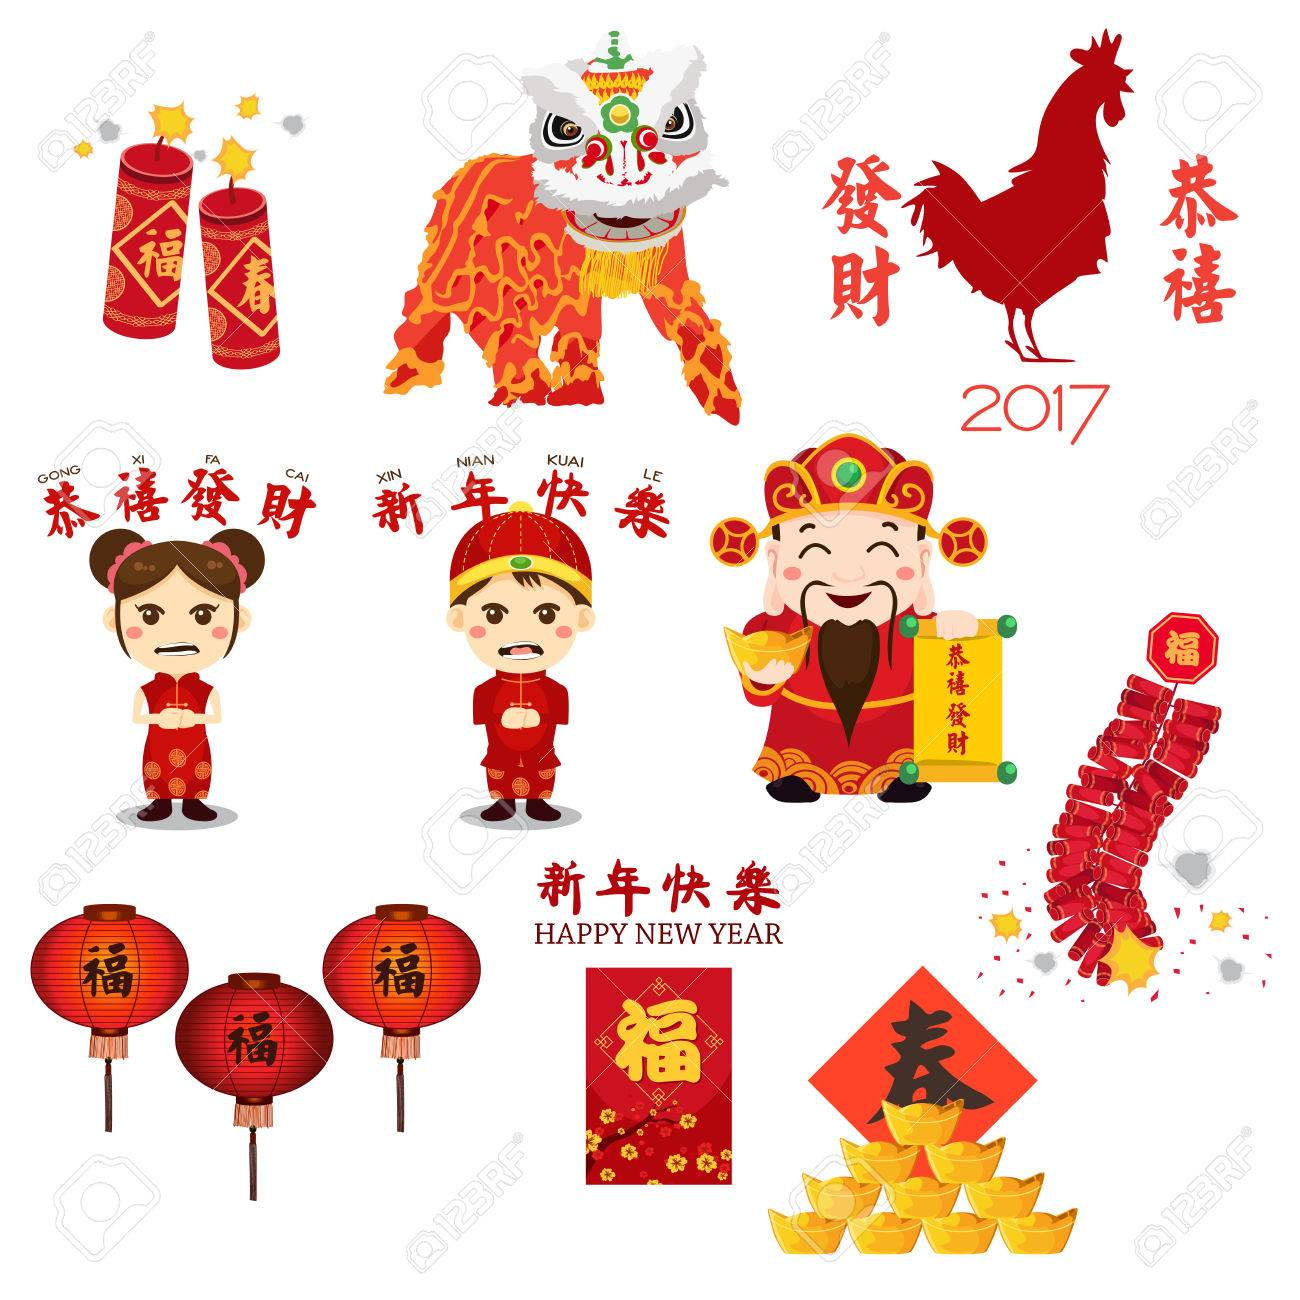 A vector illustration of Chinese New Year Icons and Cliparts.